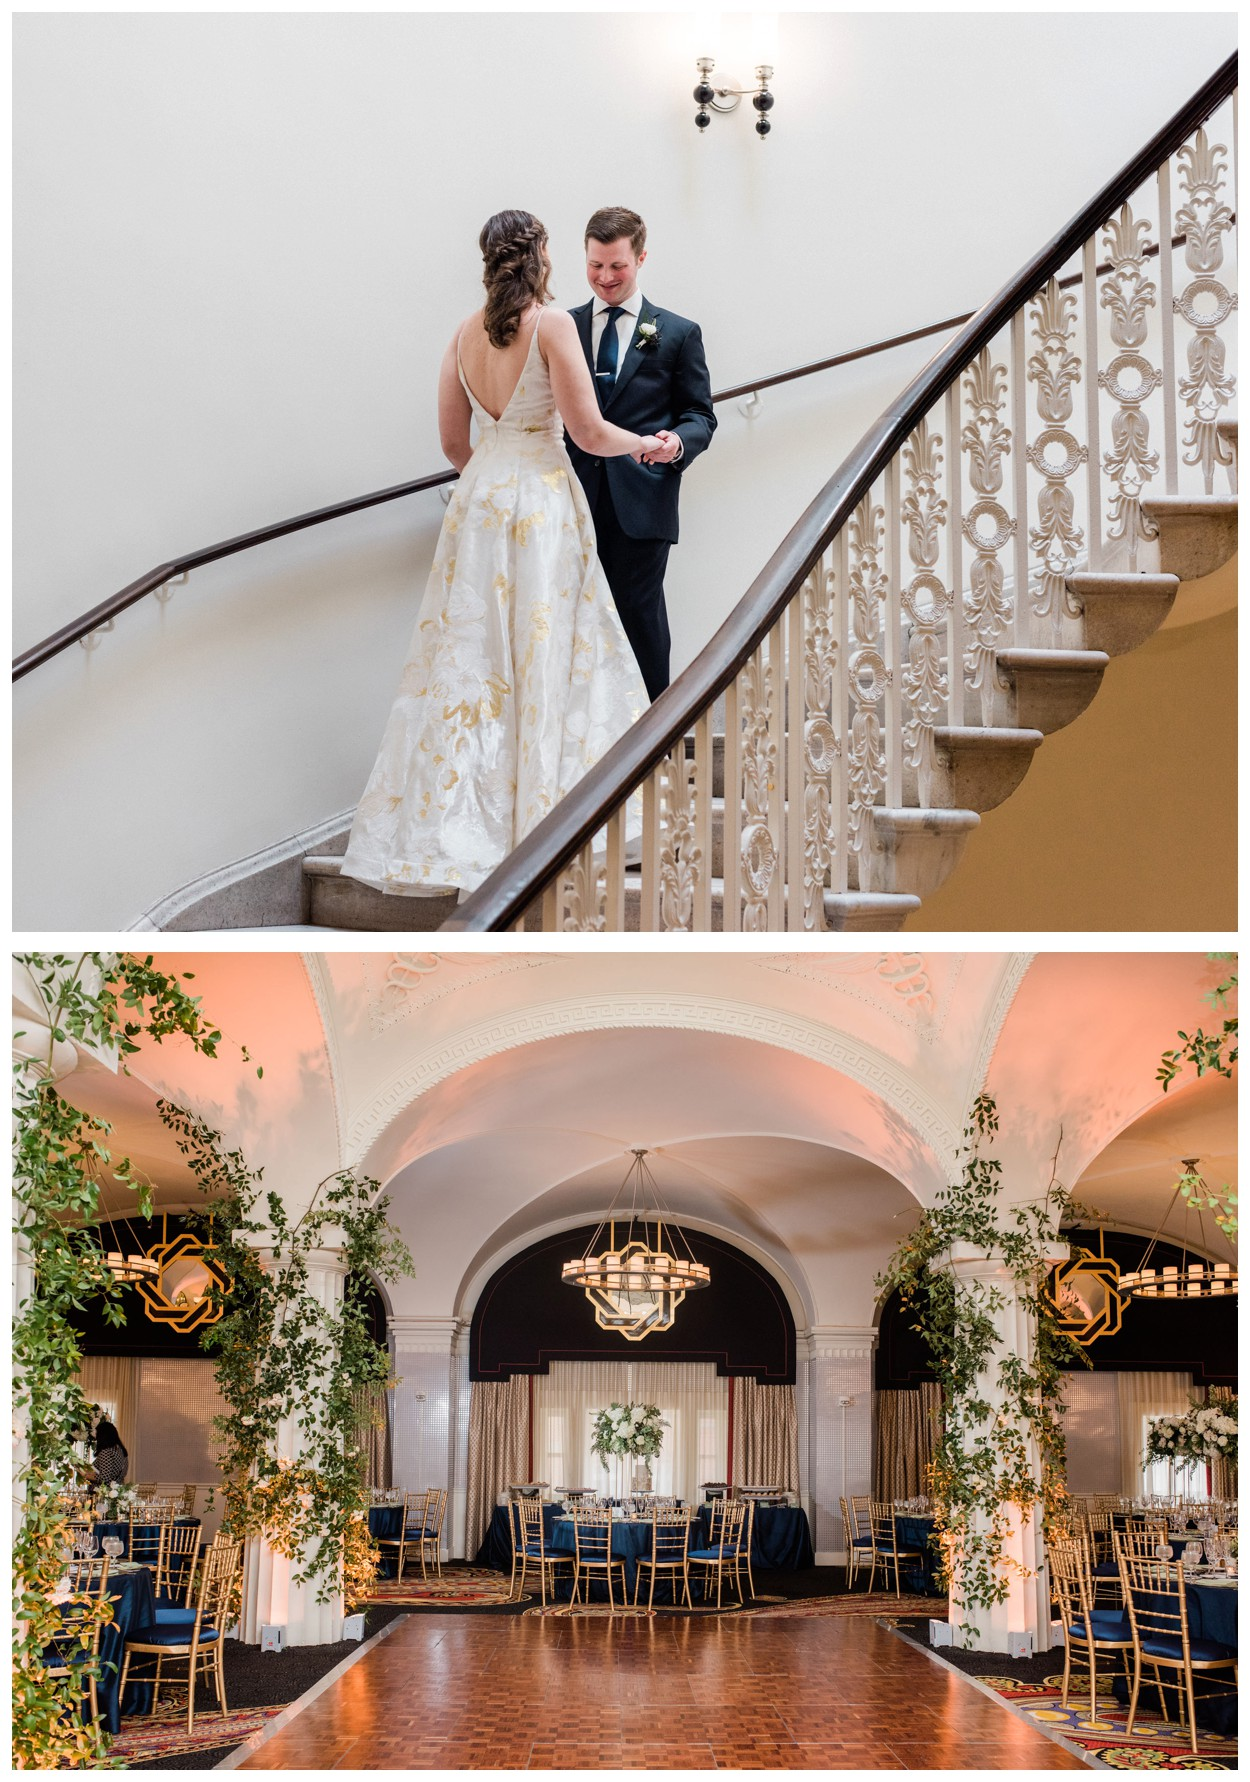 Spring Wedding at the Hotel Monaco Washington, DC by fine art wedding photographer Lissa Ryan Photography